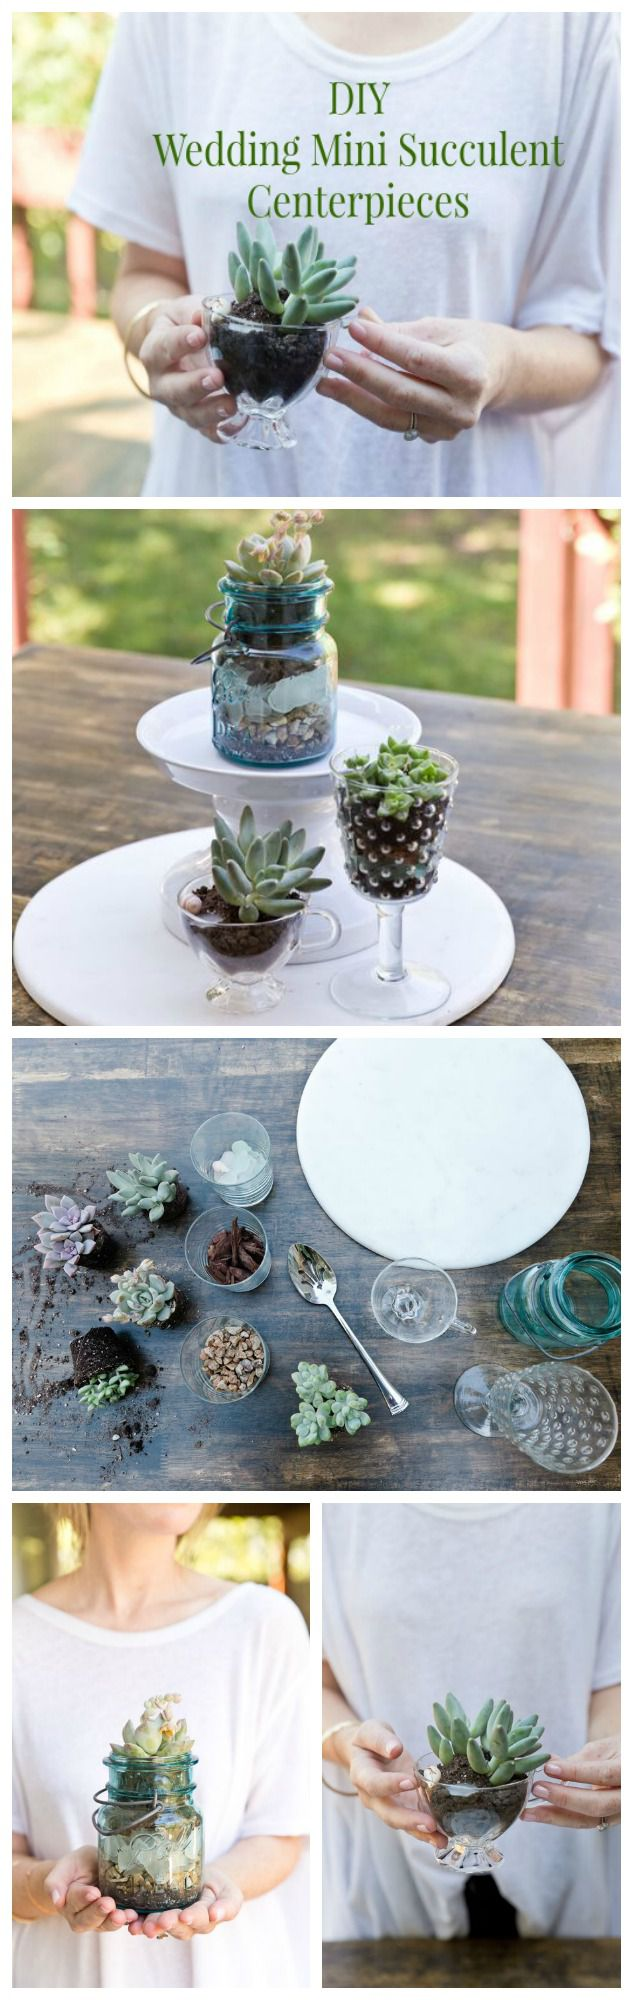 Awe Inspiring Diy Wedding Succulent Centerpieces Rustic Wedding Chic Home Interior And Landscaping Transignezvosmurscom